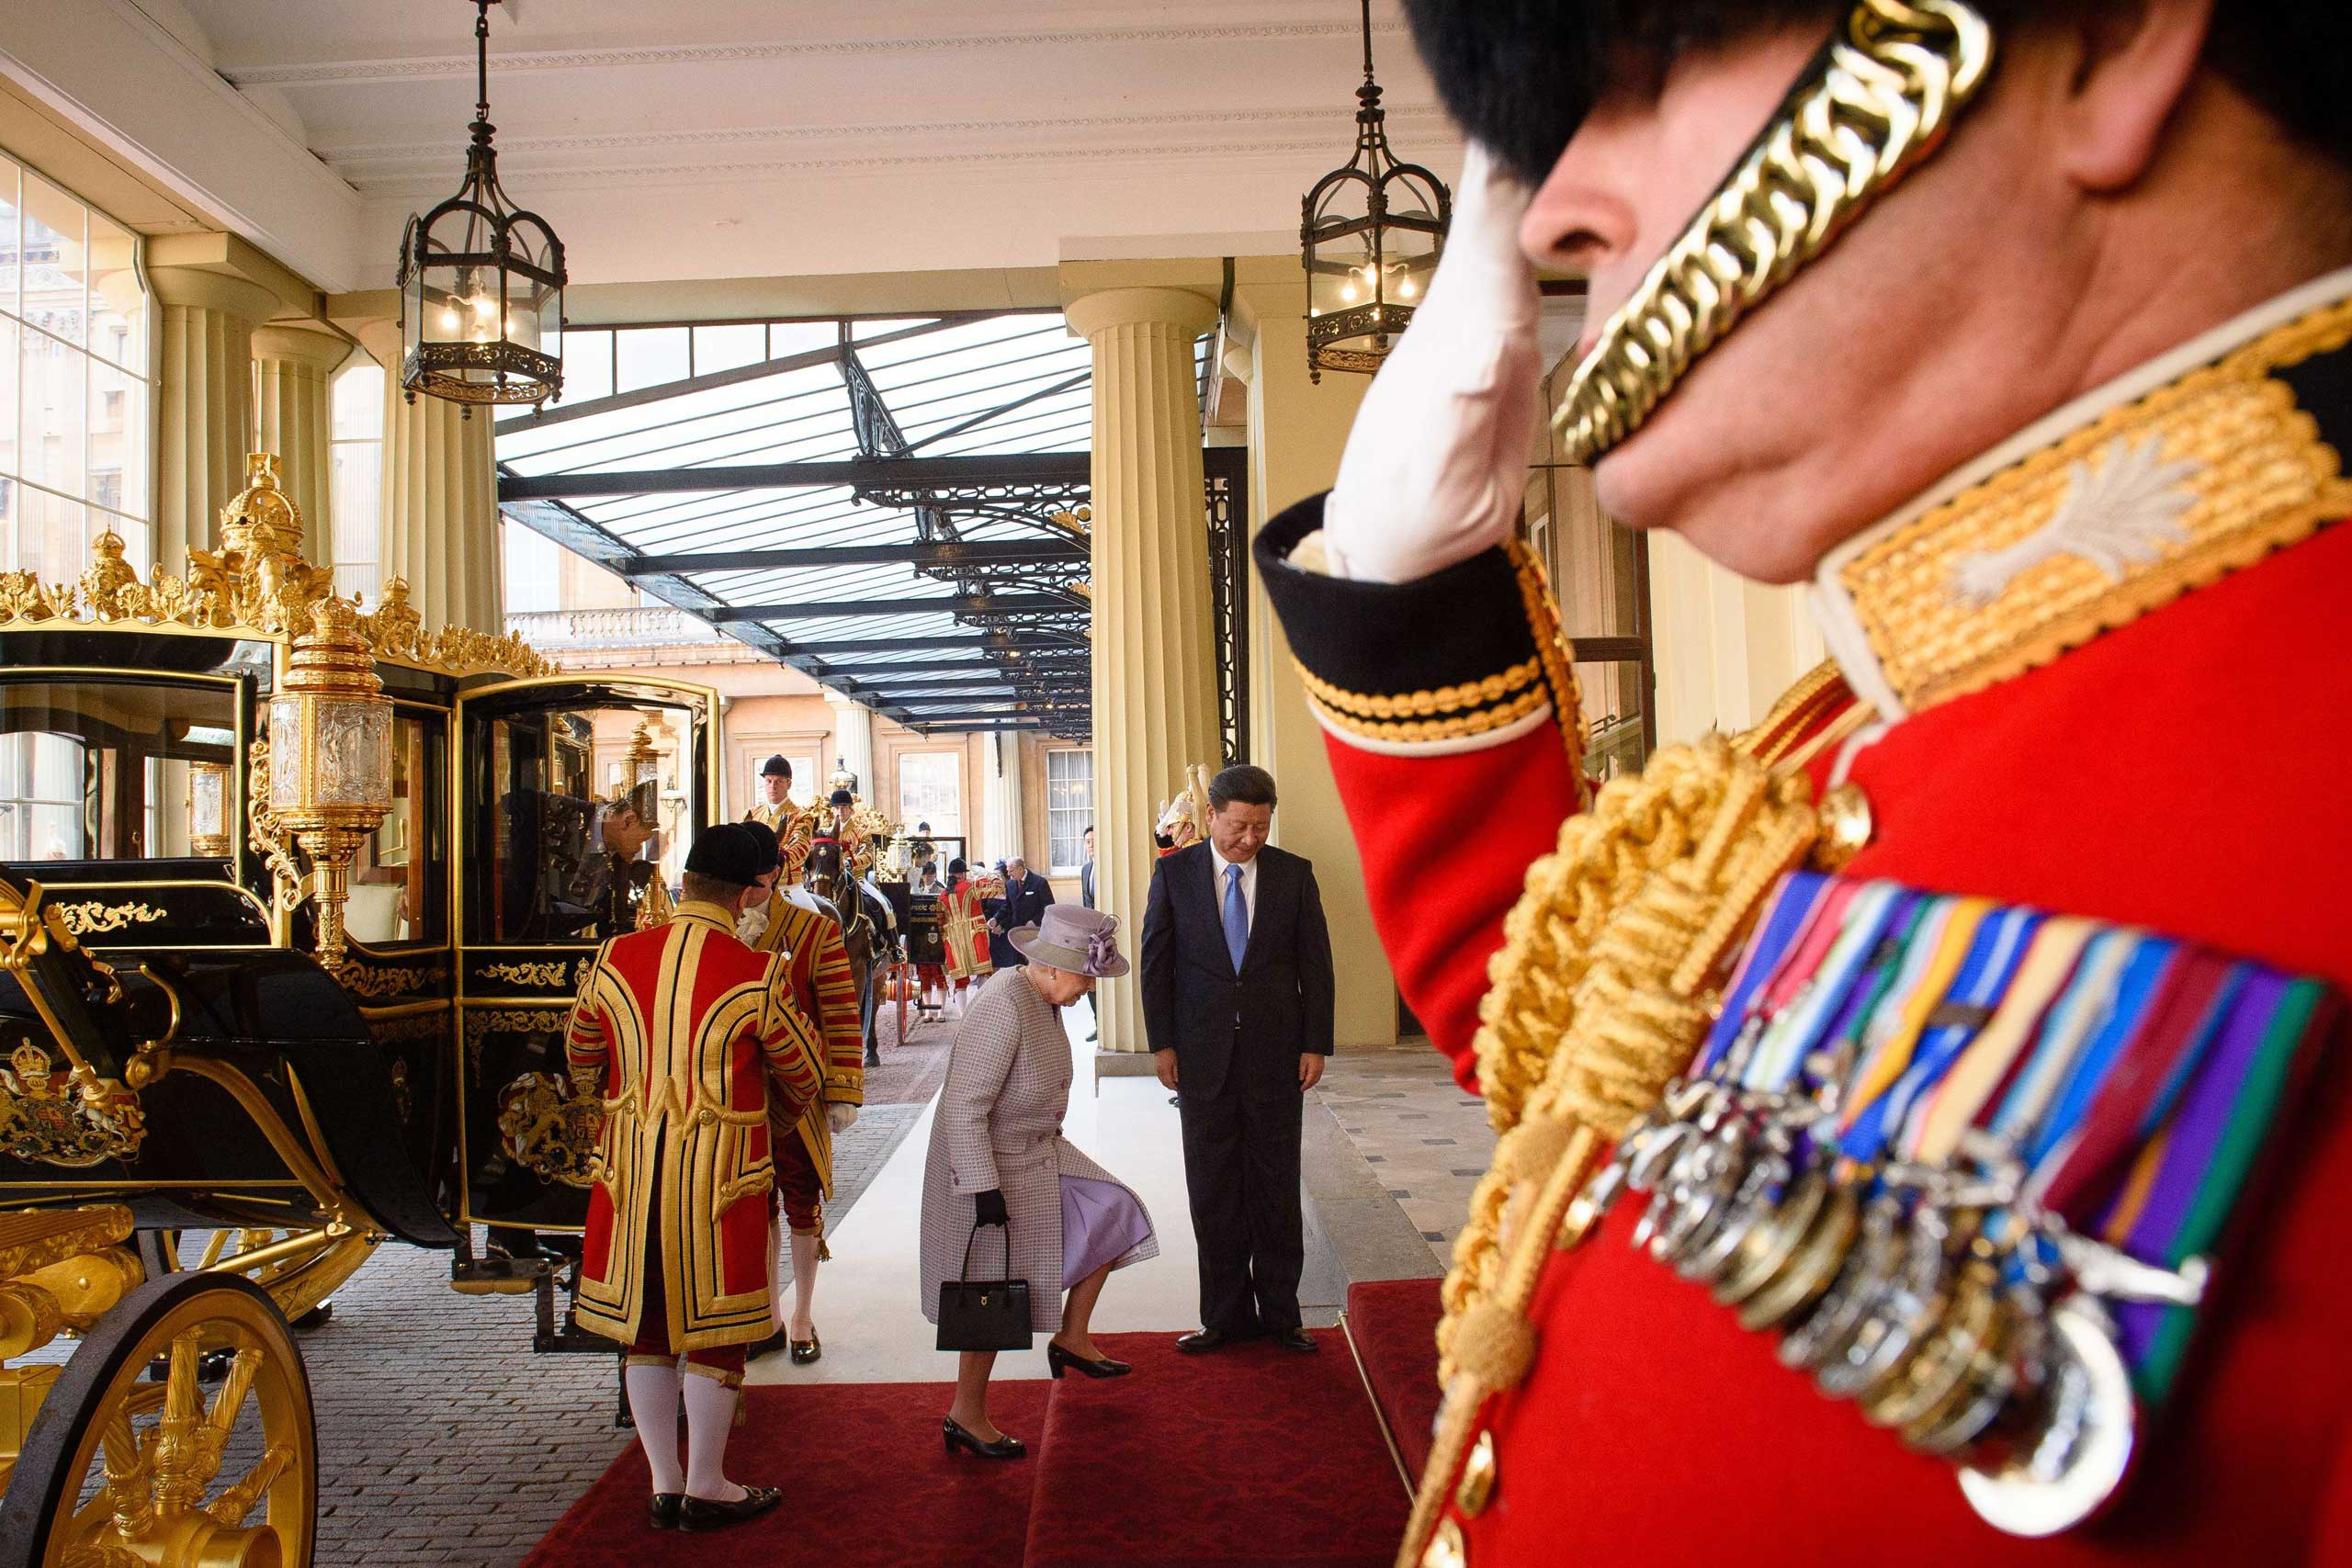 Queen Elizabeth II and President Xi arrive at Buckingham Palace in central London, on Oct. 20, 2015.